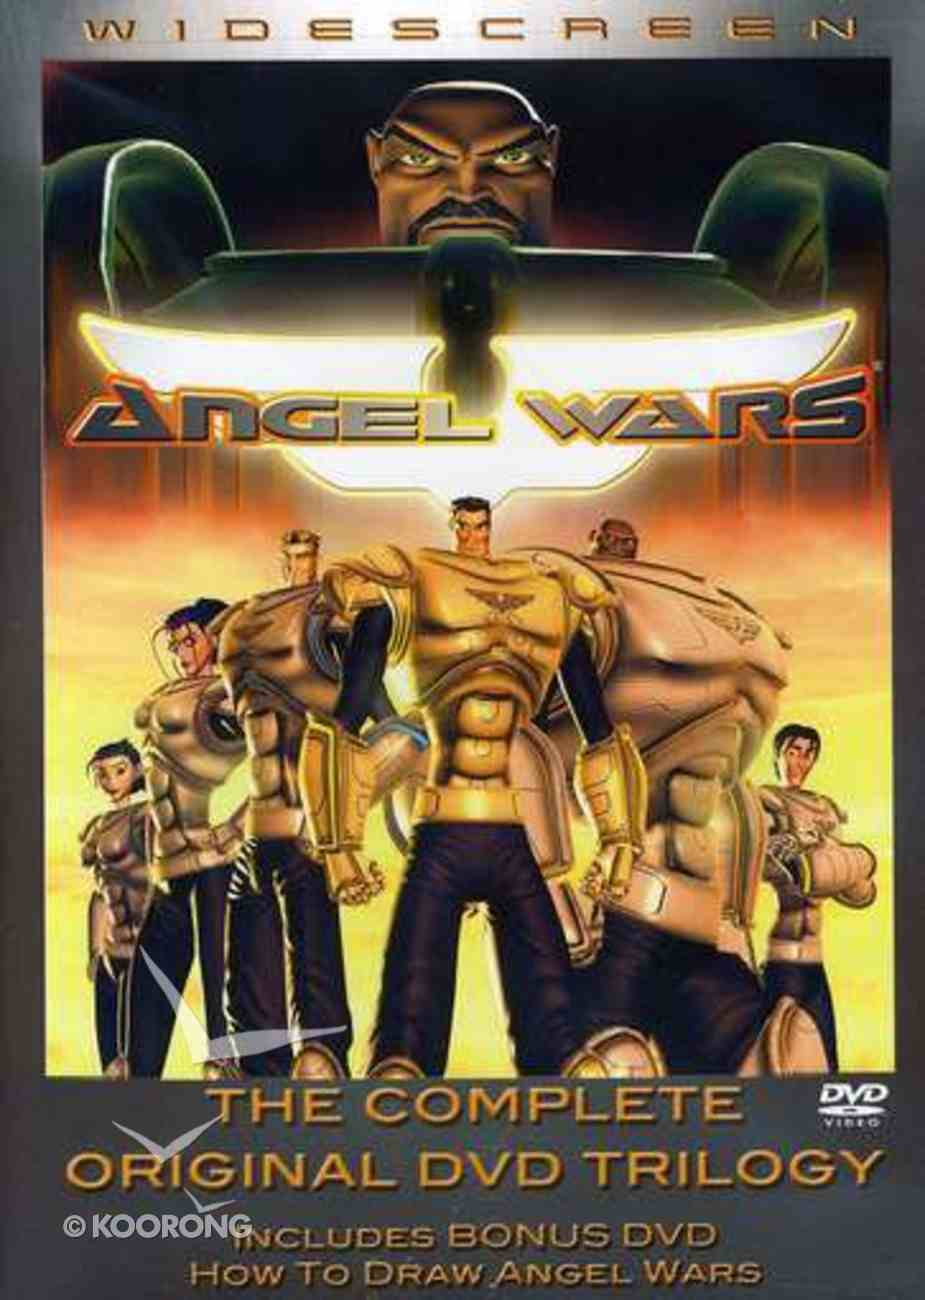 Box Set (Repackaged) (4 DVD Set) (Angel Wars Dvd Series) DVD